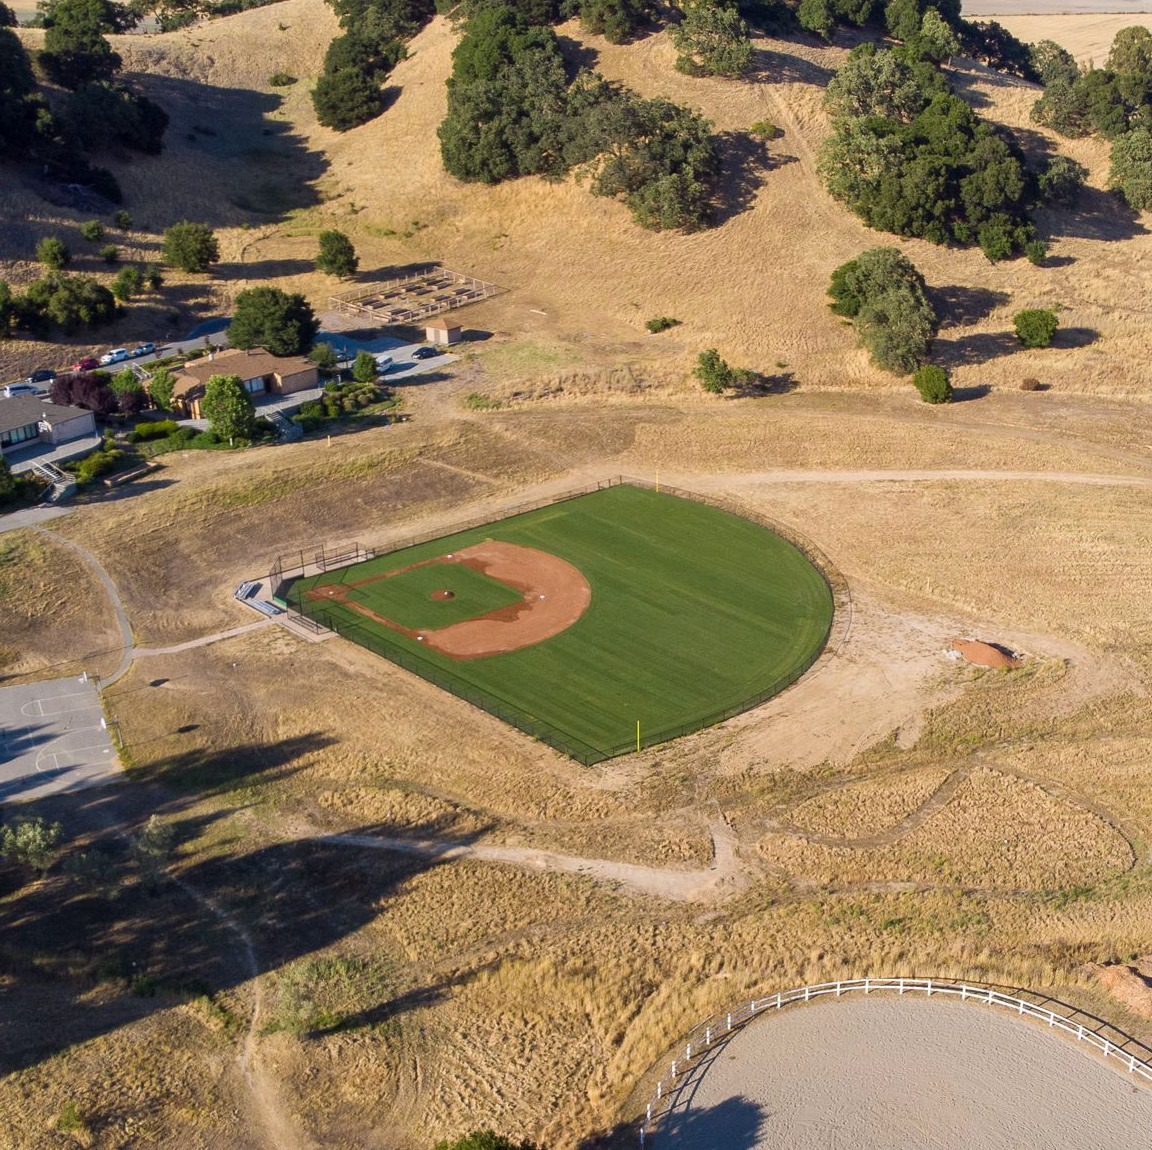 New Baseball Field for St. Vincent's Scholl for Boys